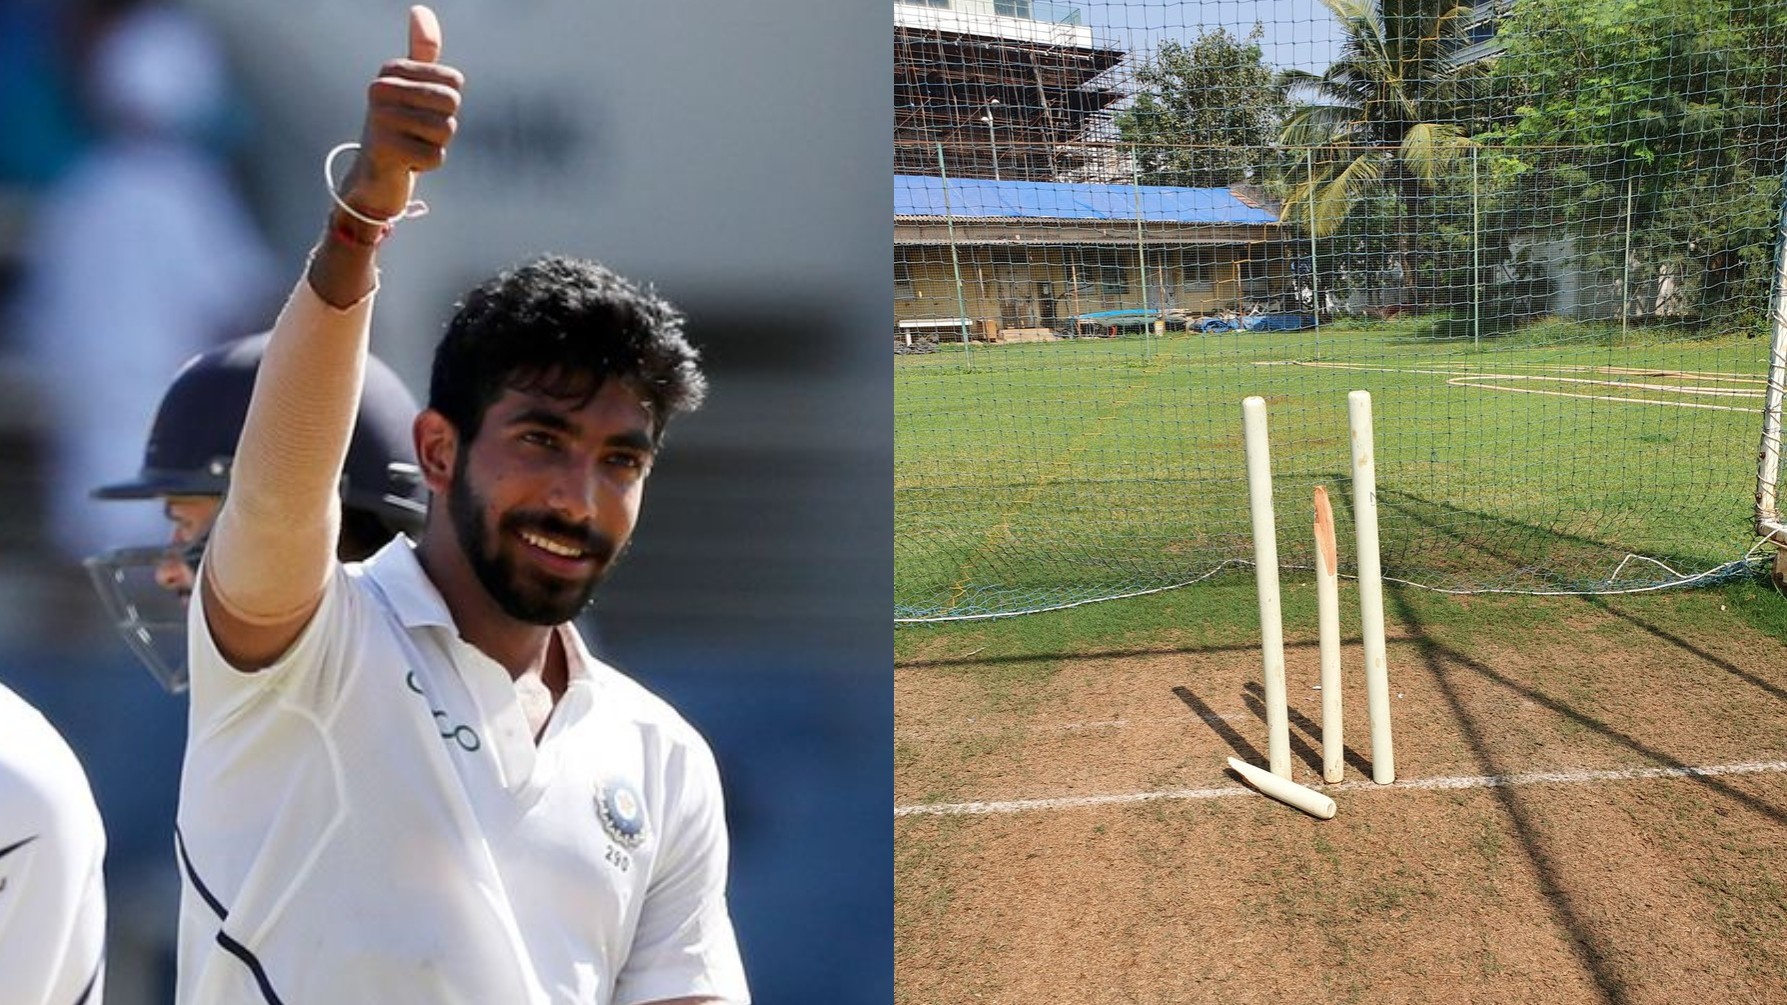 Jasprit Bumrah is back to being best, shares photo of broken middle stump during practice